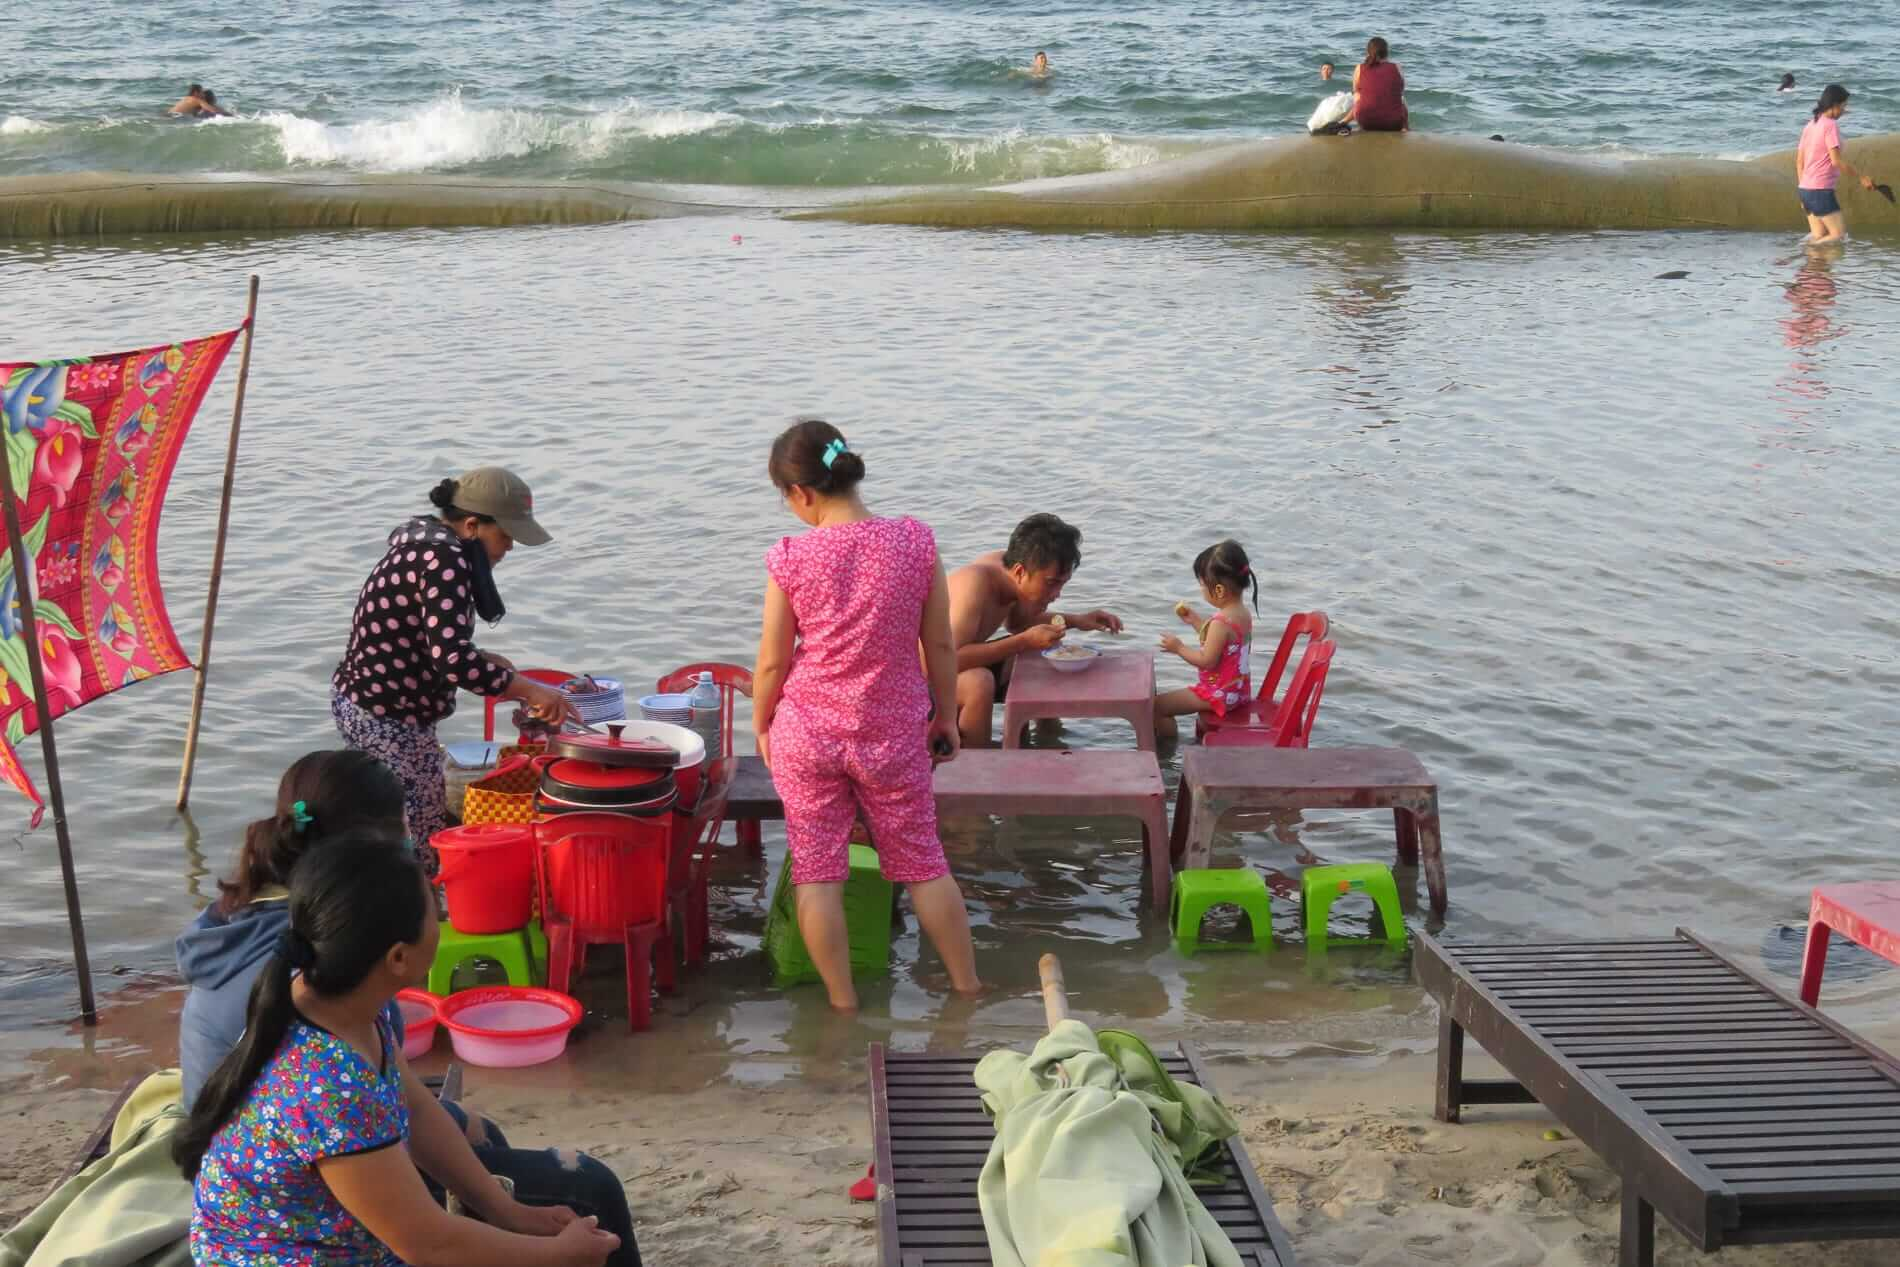 A beach barbecue in Hoi An